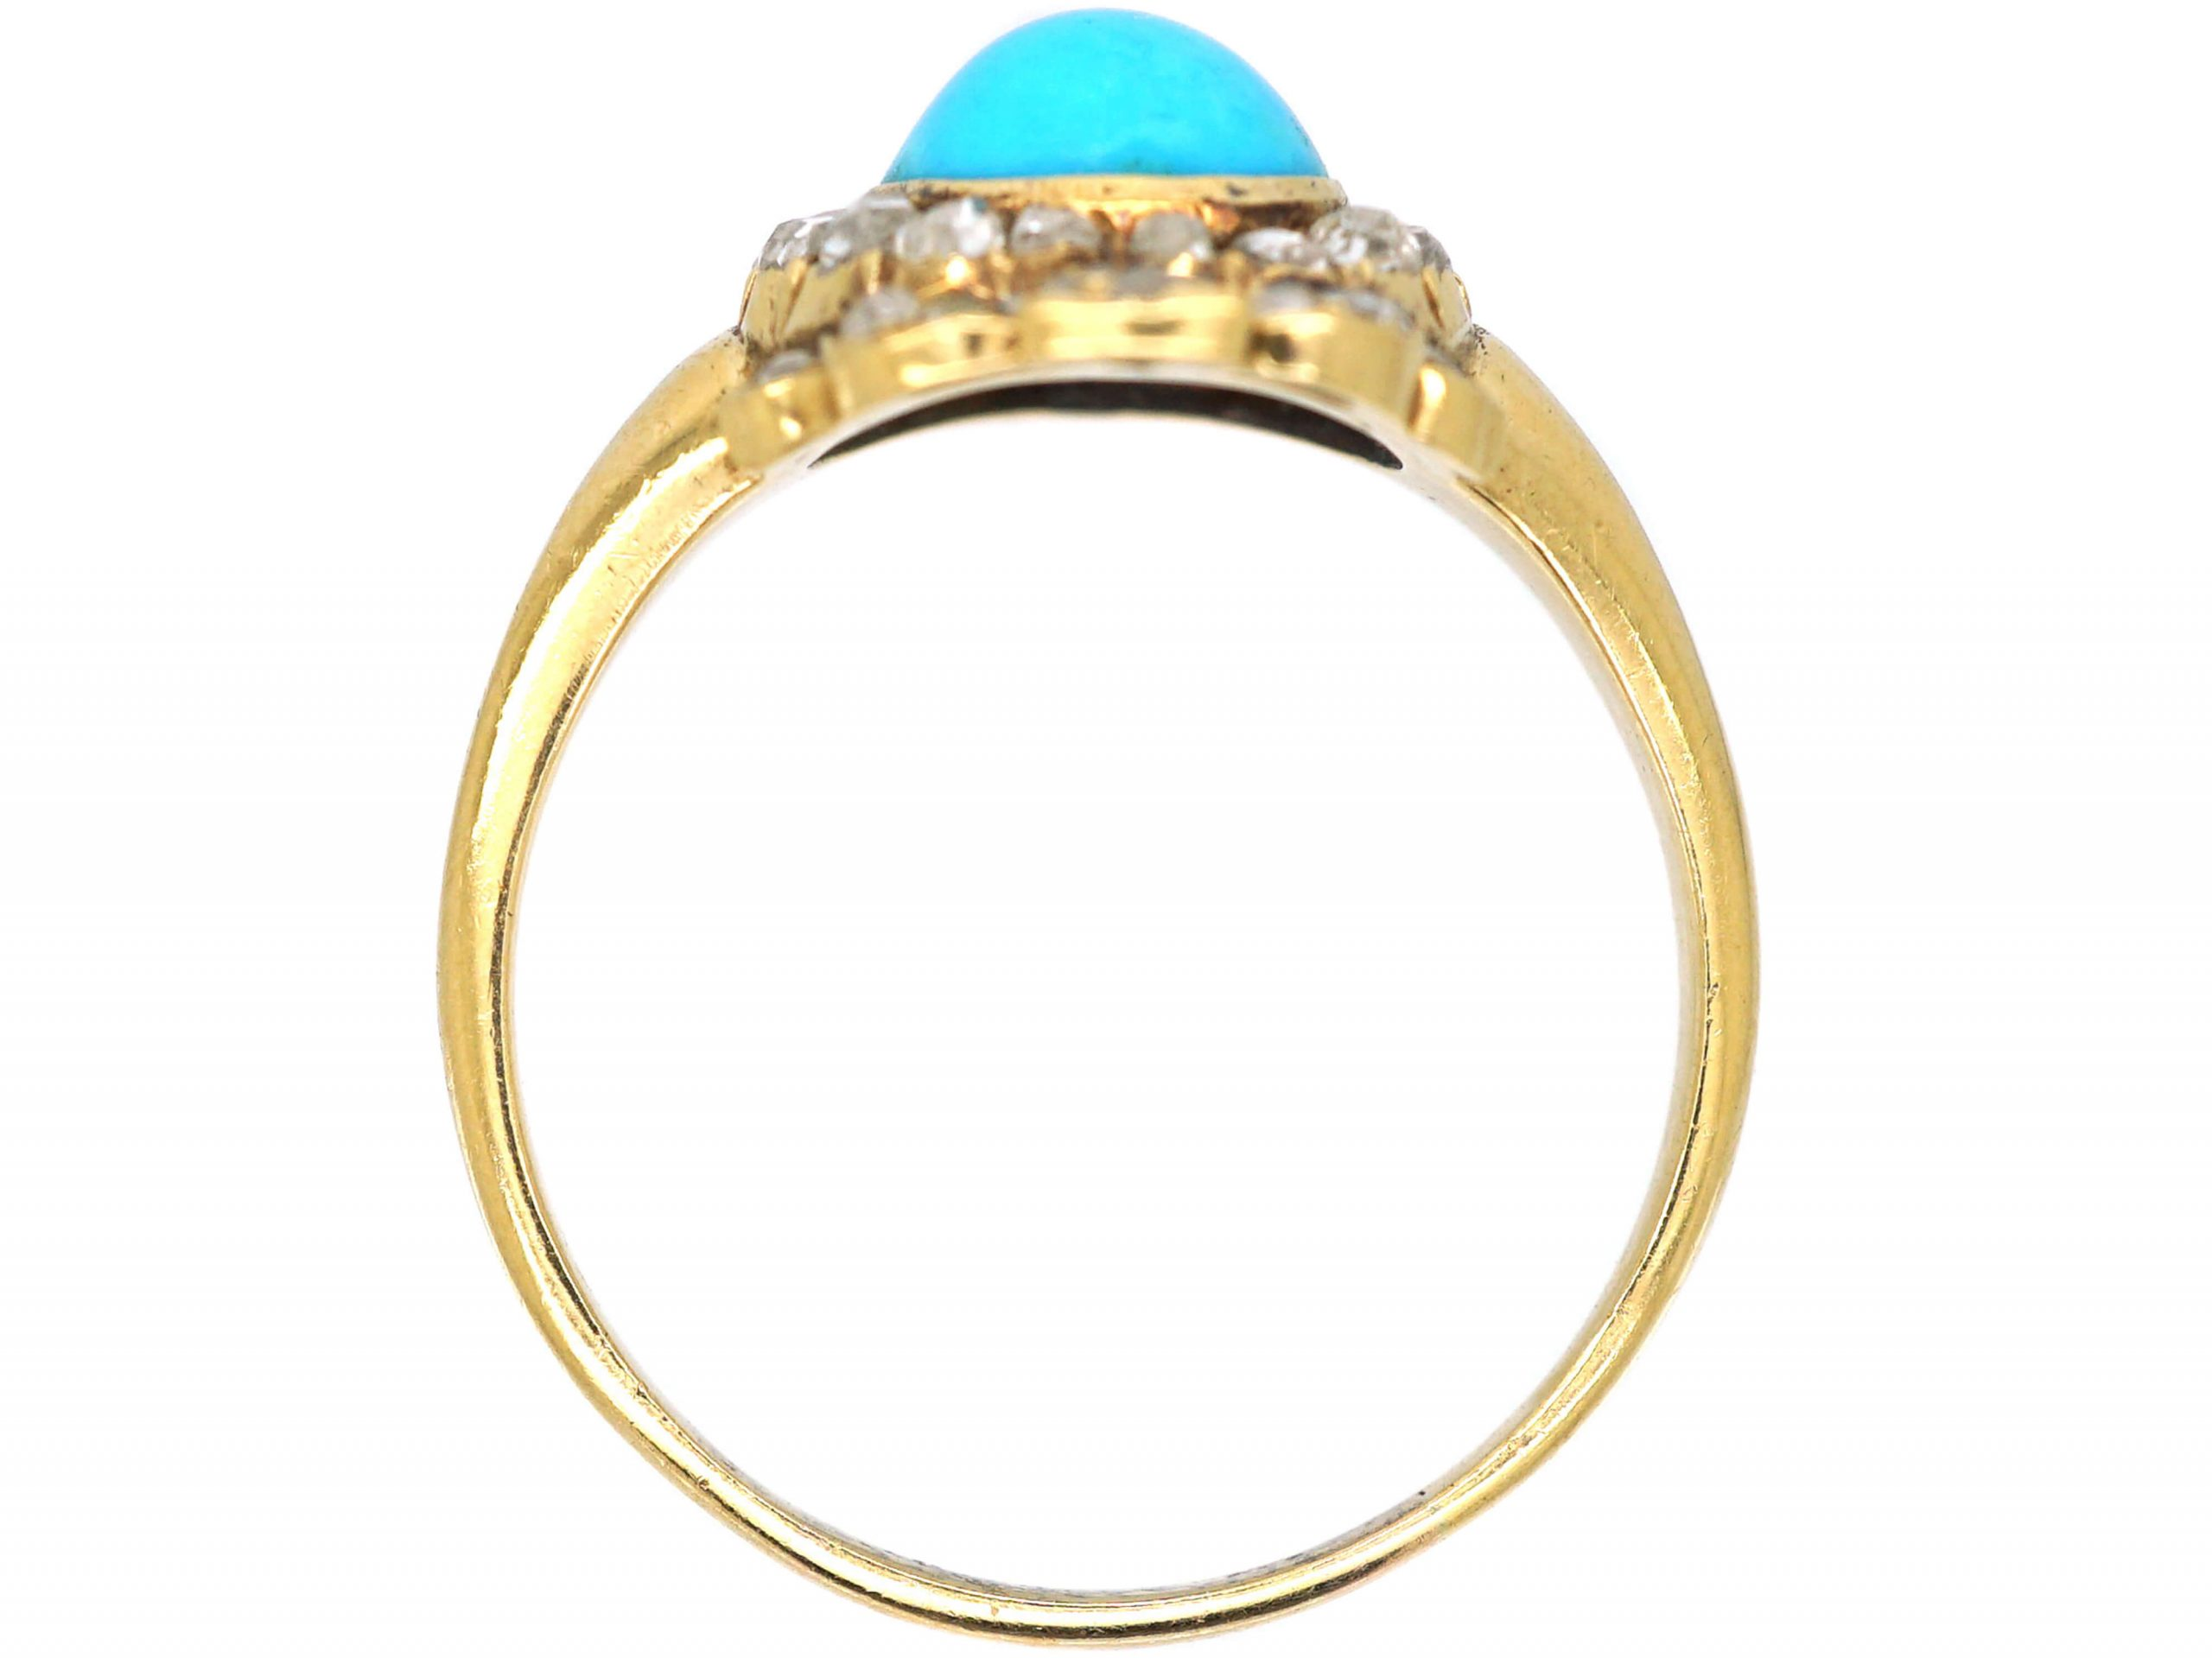 Victorian 18ct Gold, Turquoise & Rose Diamond heart Shaped Ring with Bow on top